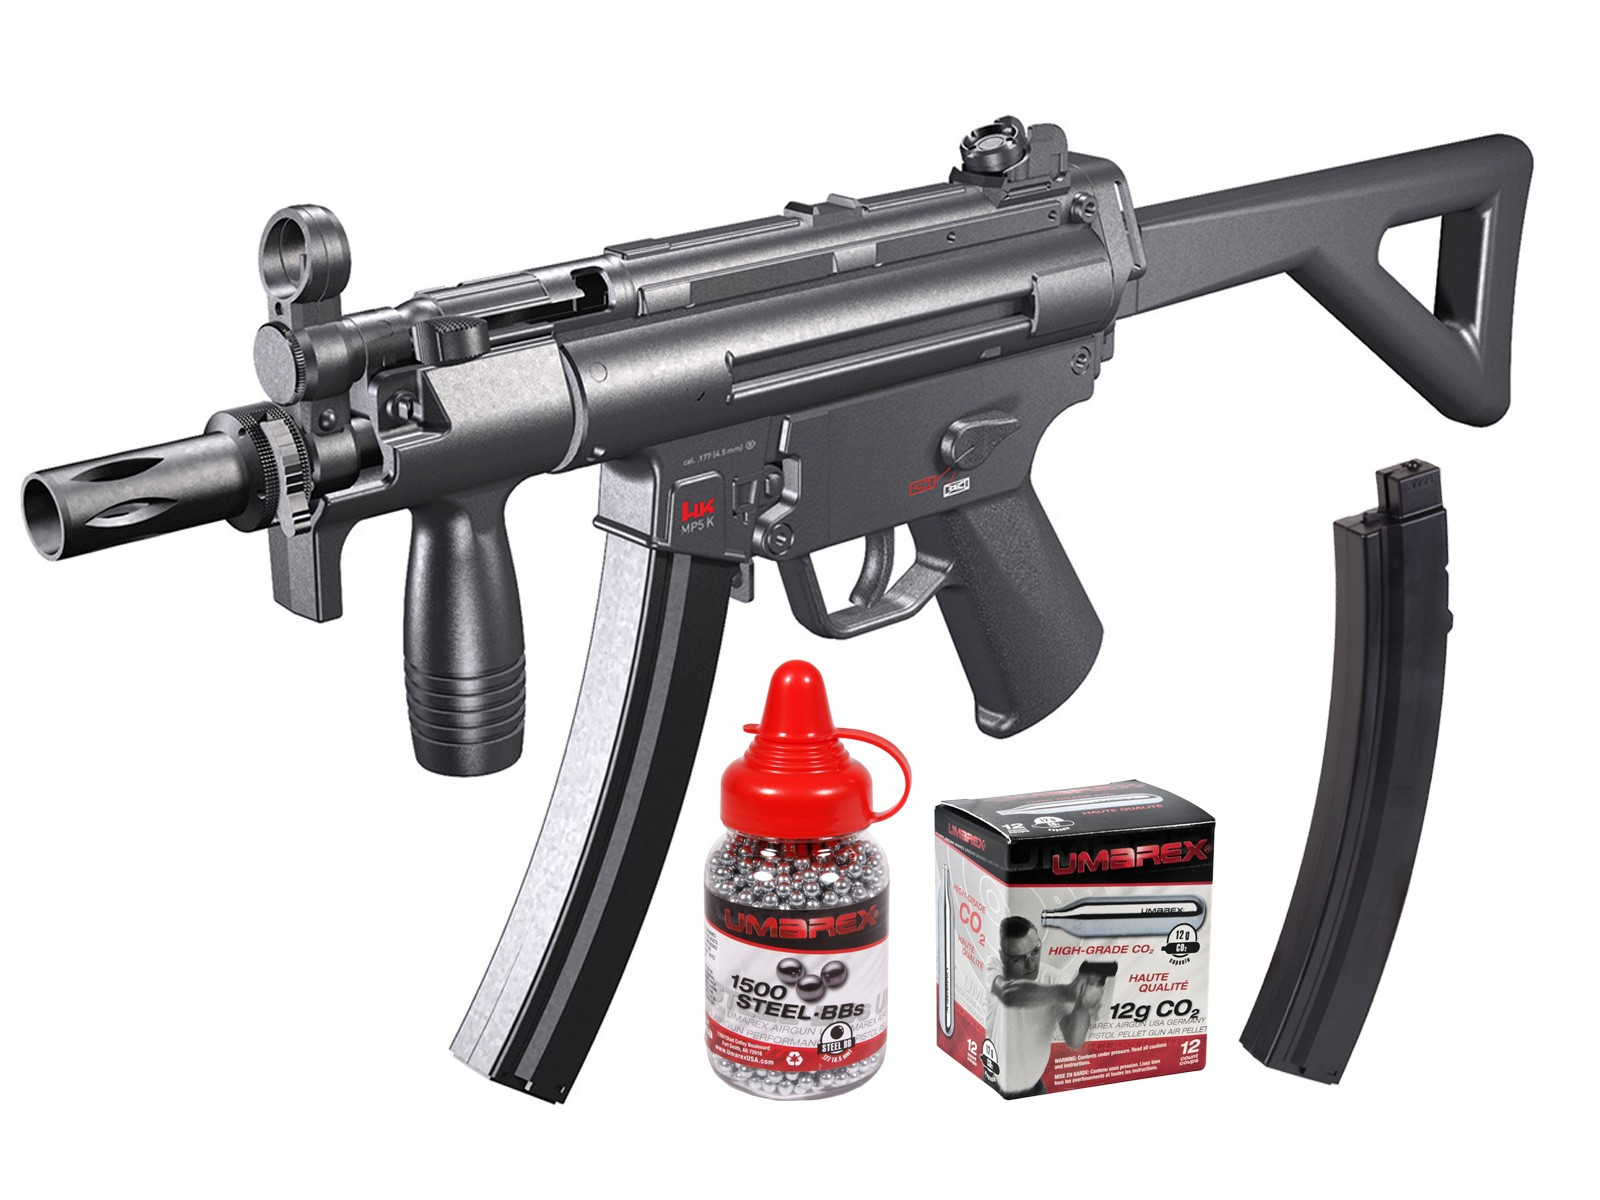 MP5 Silver Storm (H&K MP5-PDW) 0.177